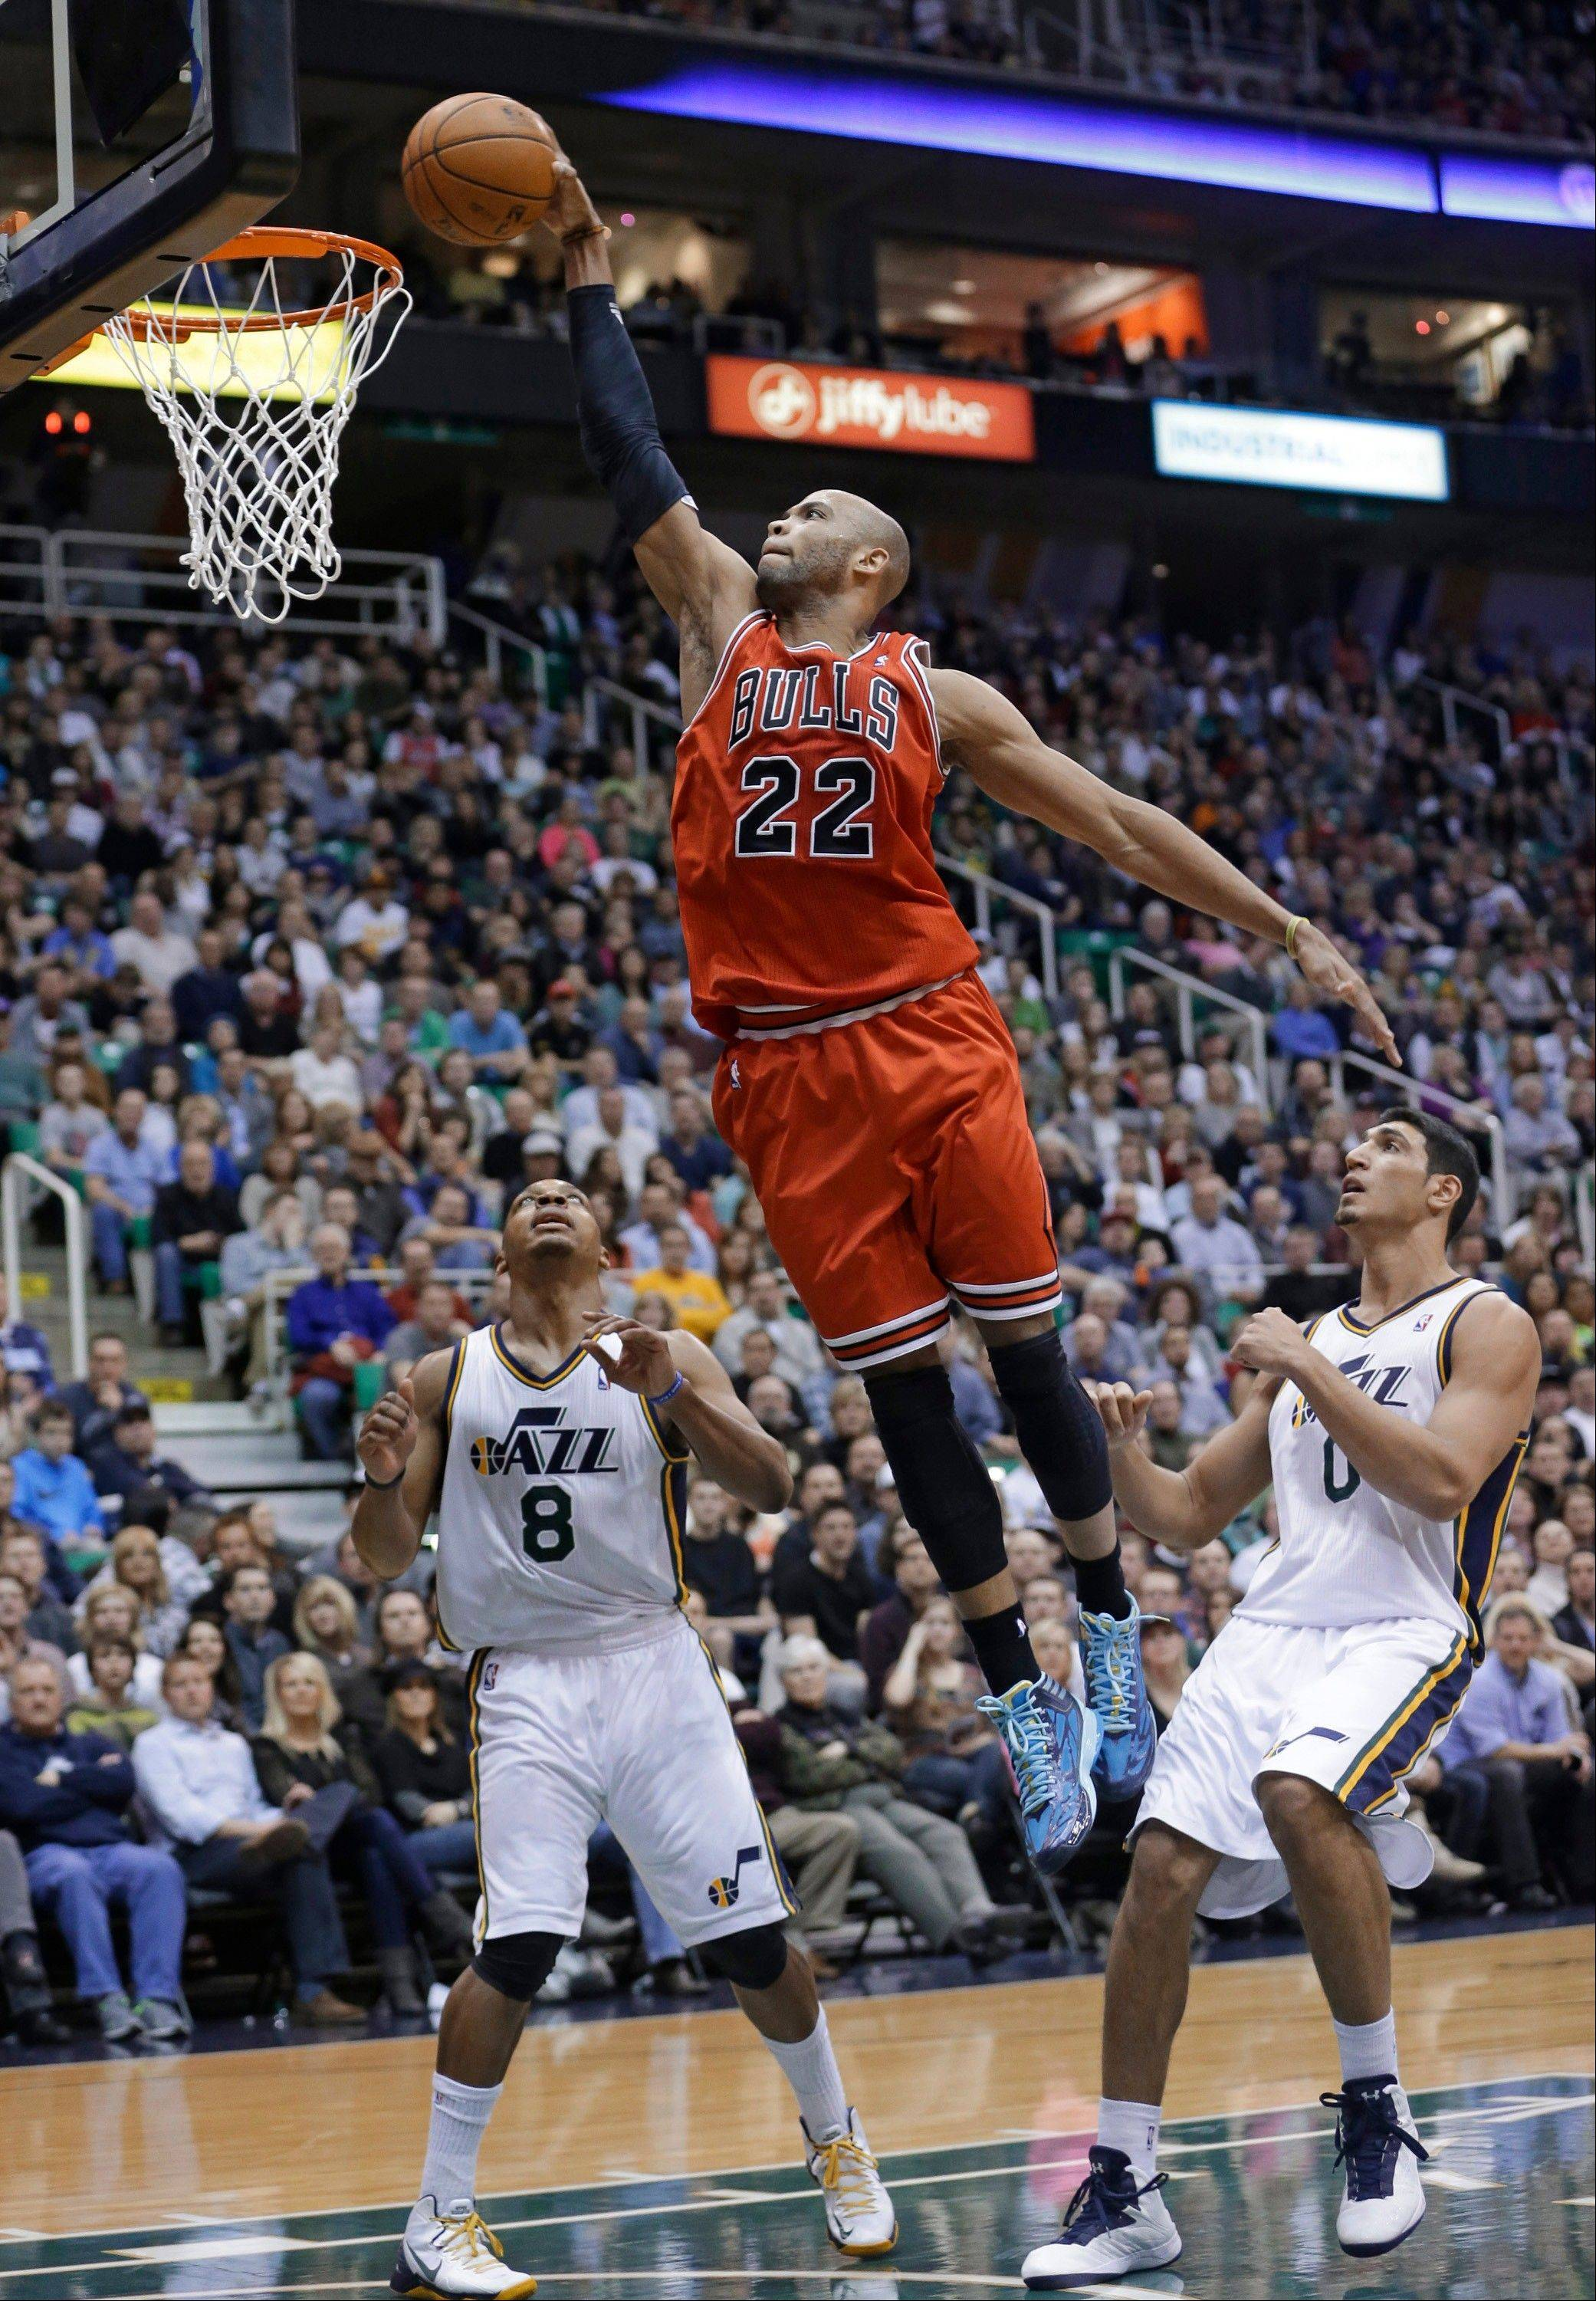 The Bulls are hoping forward Taj Gibson can return to action on Thursday.